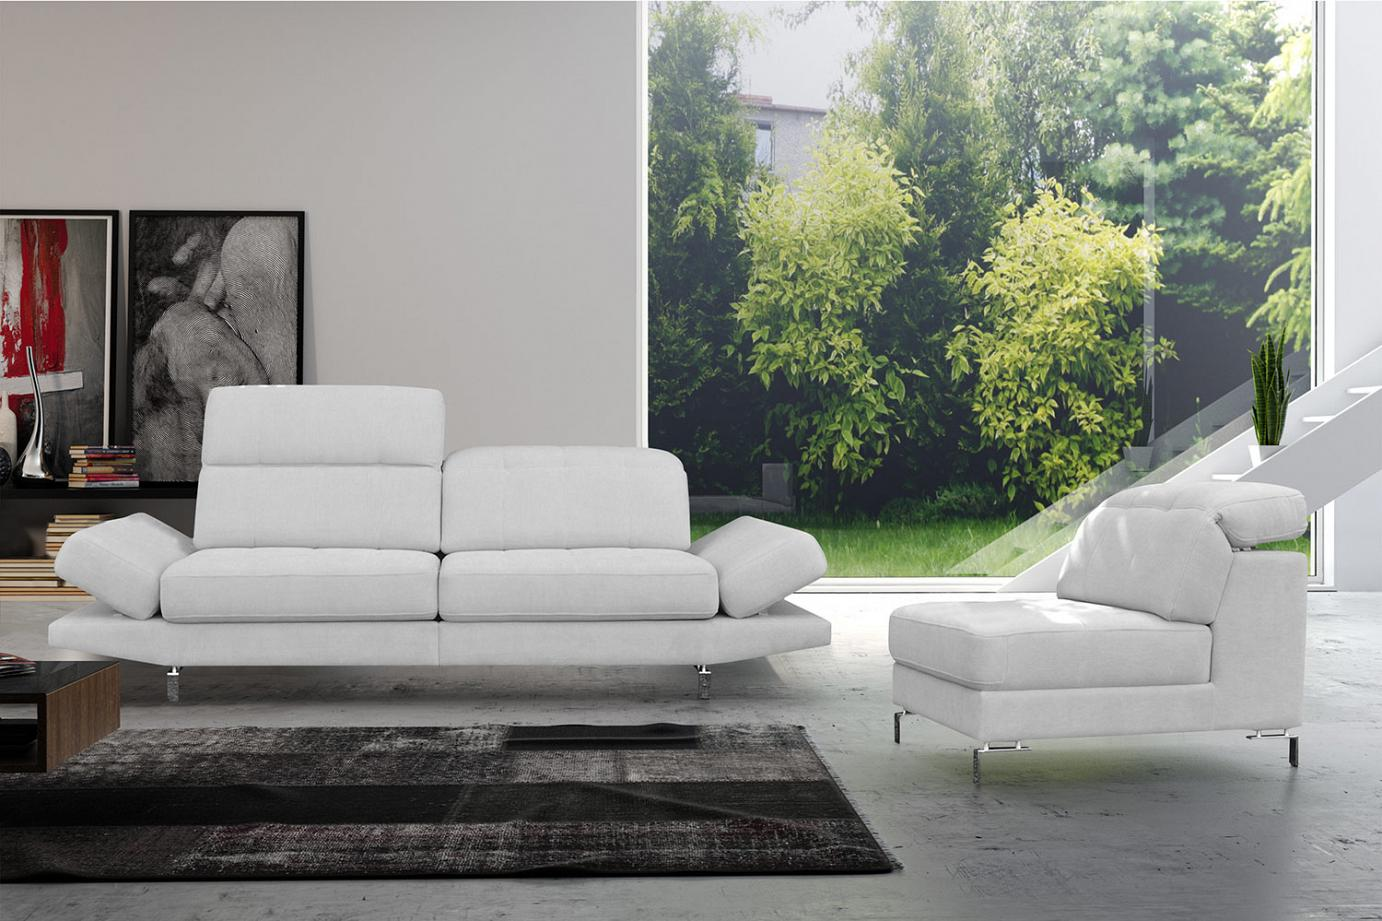 Lorena: The original sofa with an armchair